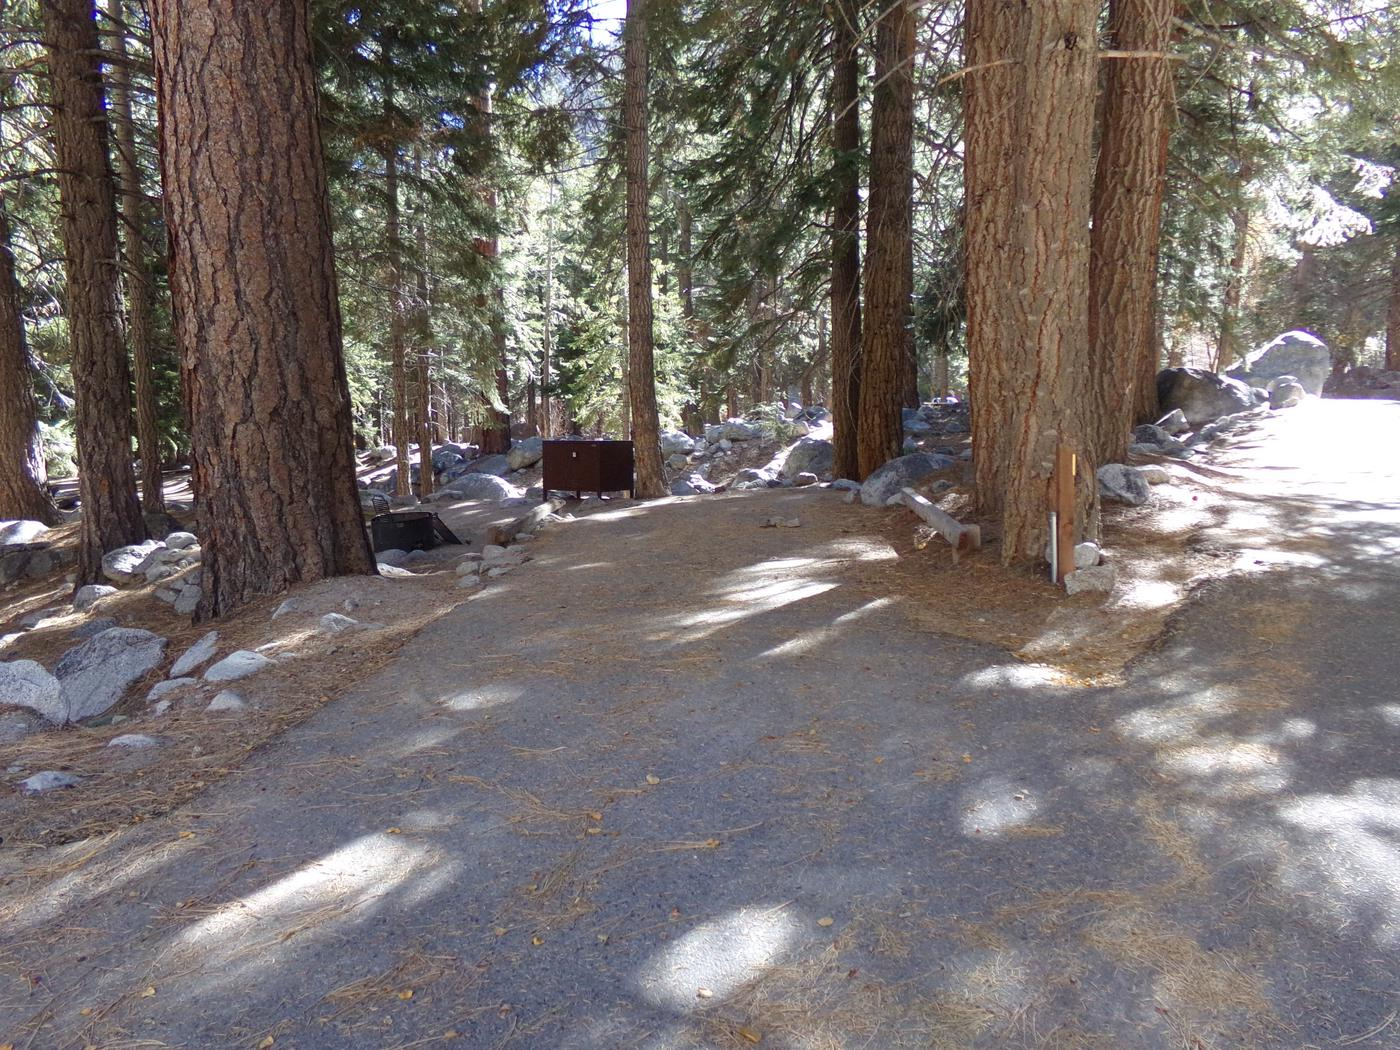 Parking space and entrance to site #17, Mt. Whitney Portal Campground.